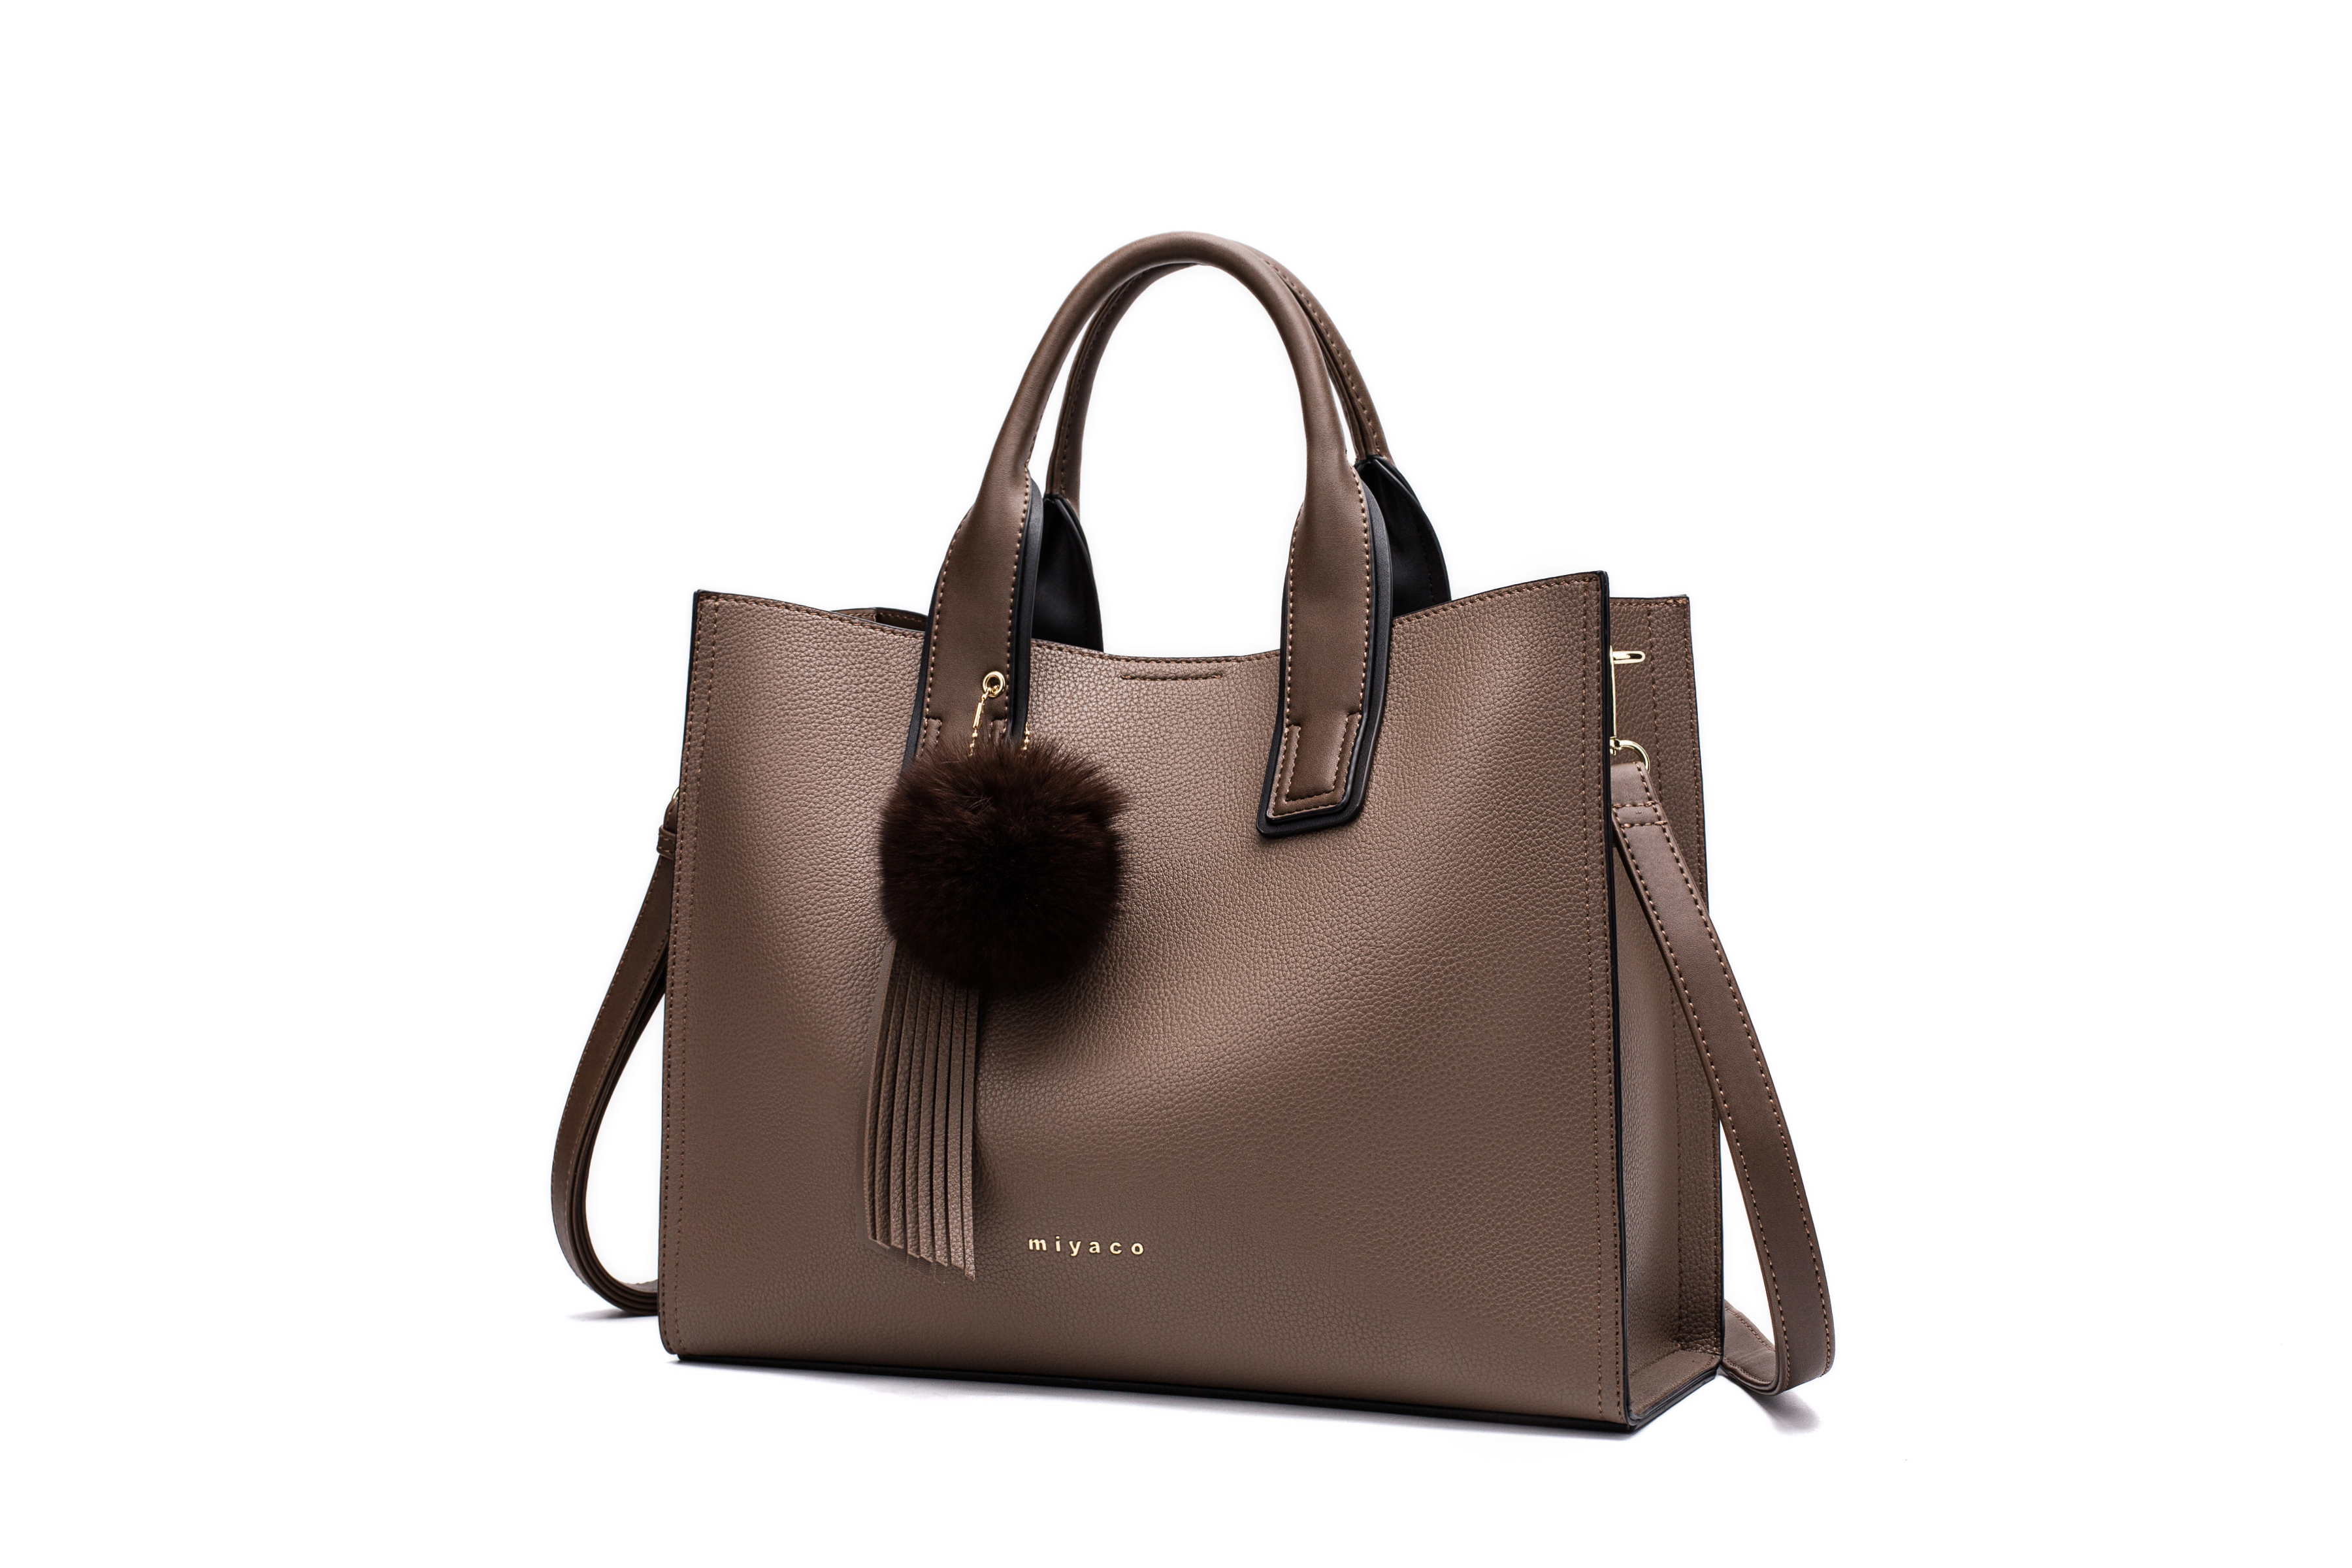 8a9c882759 Details about Miyaco Women Leather Handbags Casual Brown Tote bags  Crossbody Bag TOP-handle